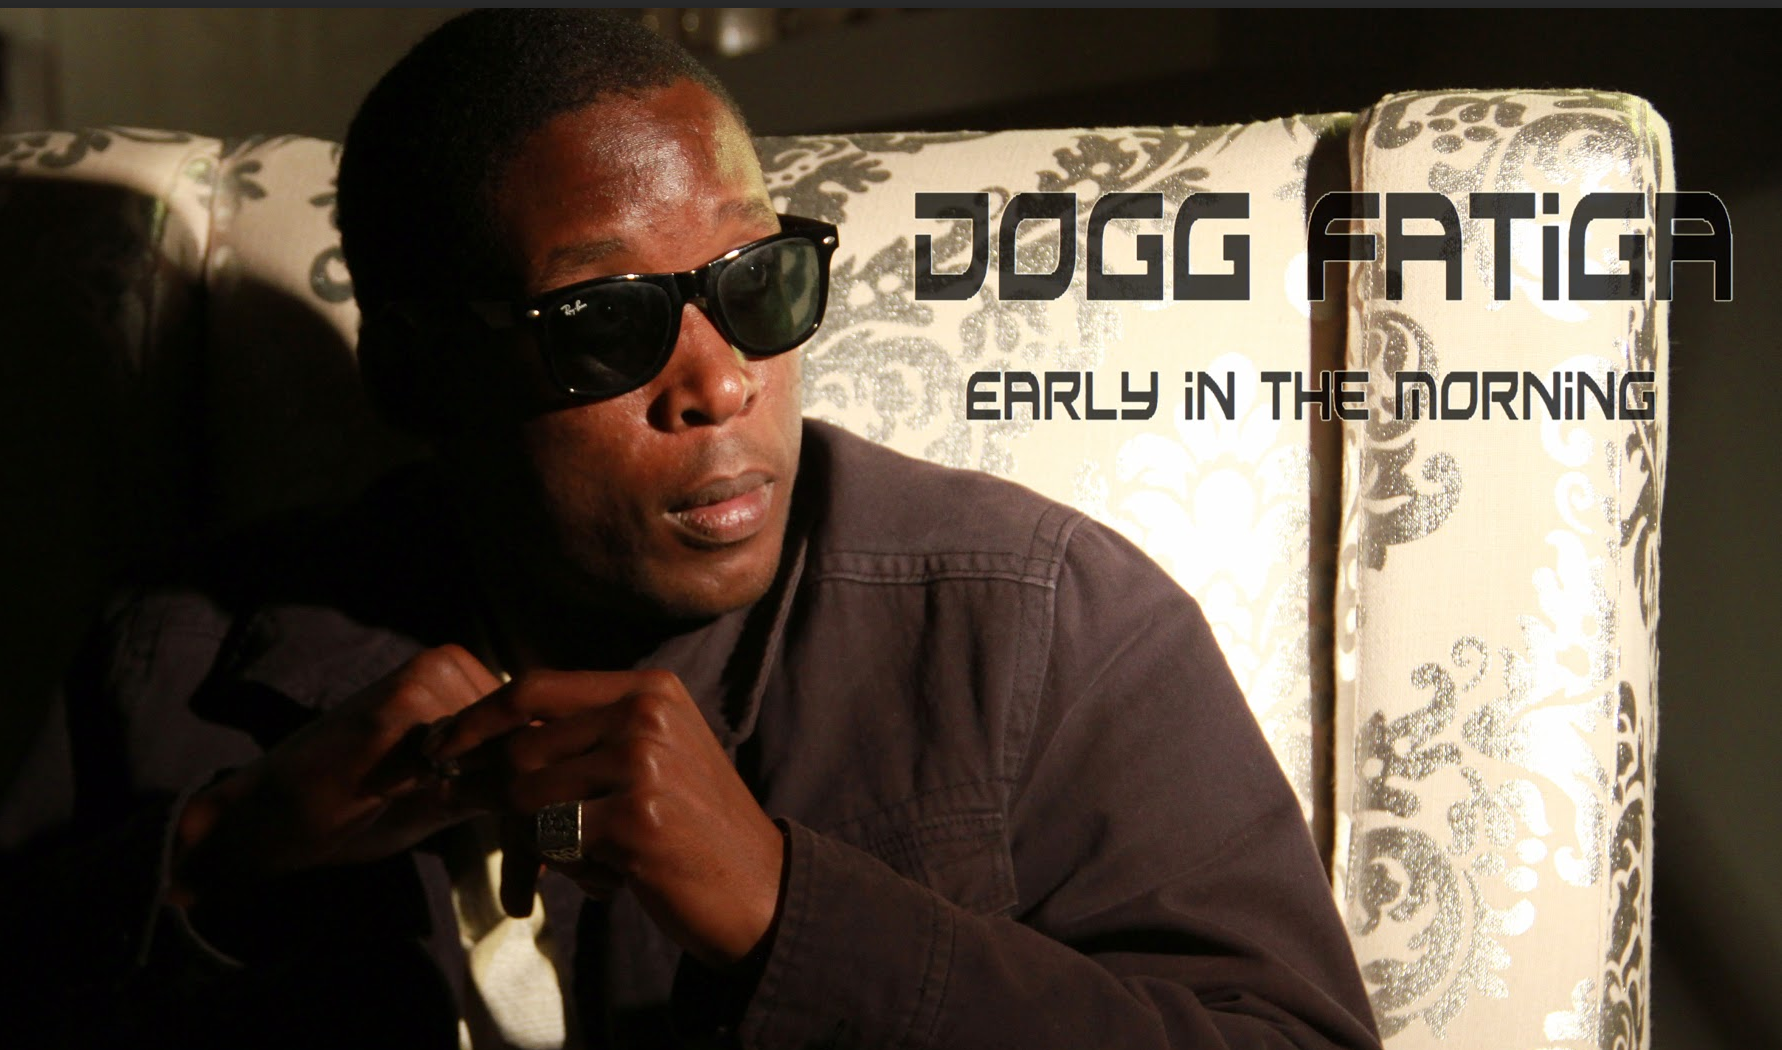 {Behind The Music} Dogg Fatiga on Early in the morning